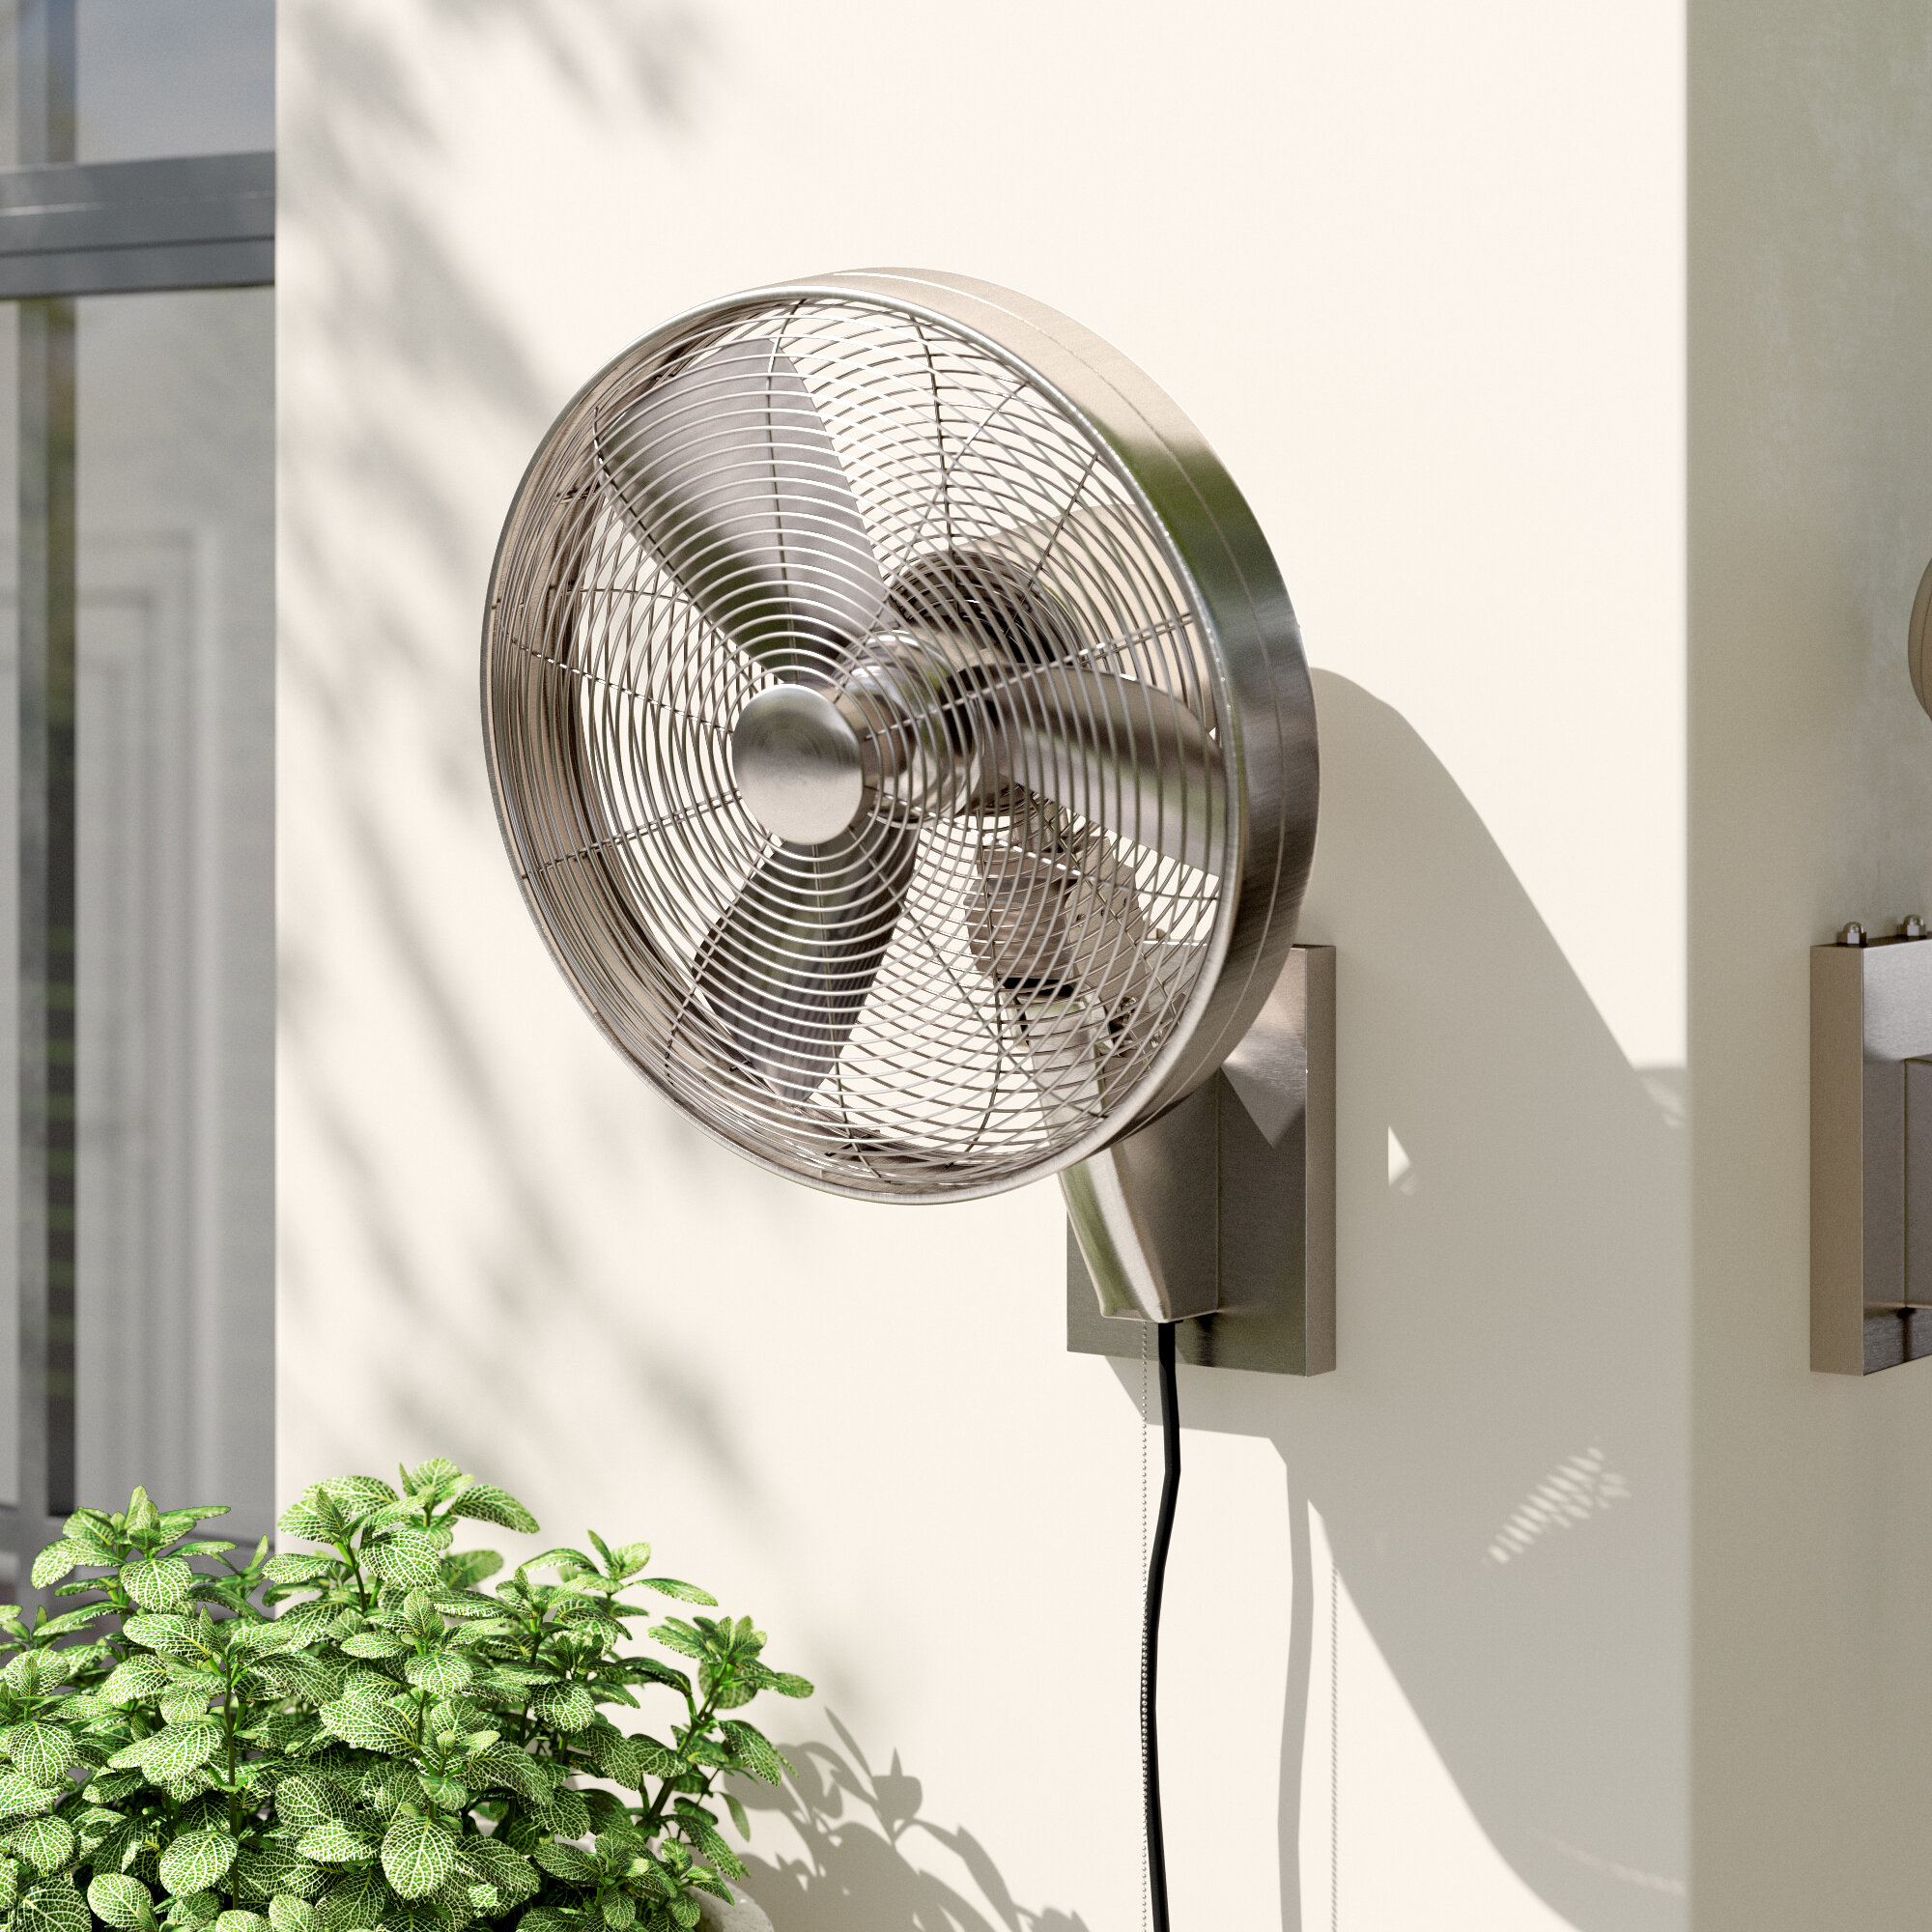 Matthews Ll Bn Laura 16 Outdoor Wall Fan With Remote Control Brushed Nickel 3 Metal Blades